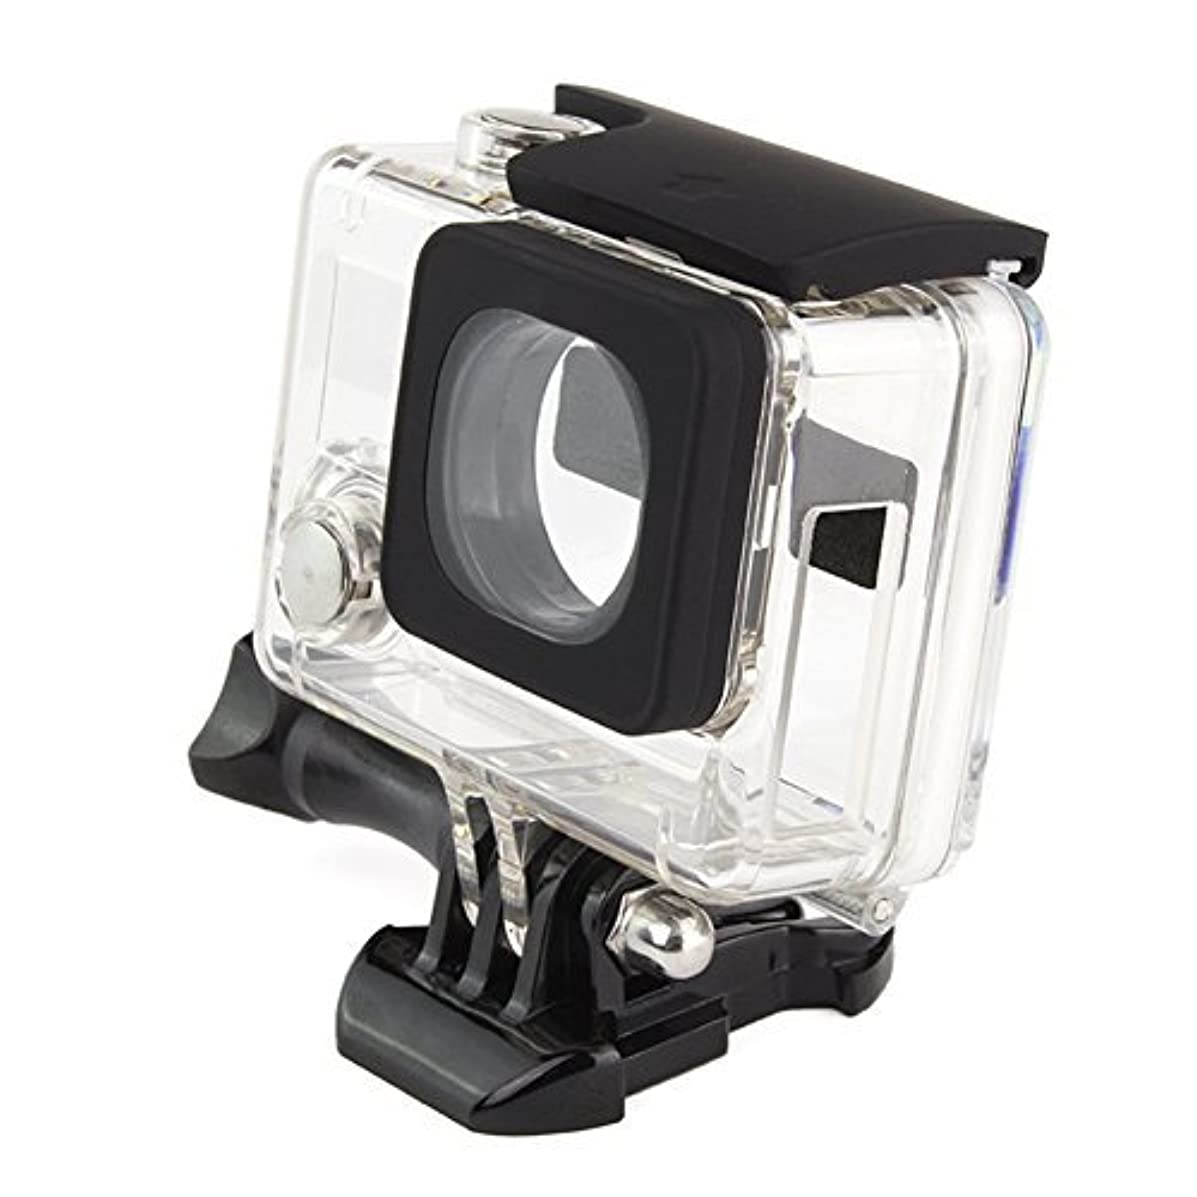 Side Open Skeleton for Go Pro4 3+ 3 Protective Housing compatible with Lens for all GoPro Hero4 Hero3 Hero3+ 3 Plus cameras